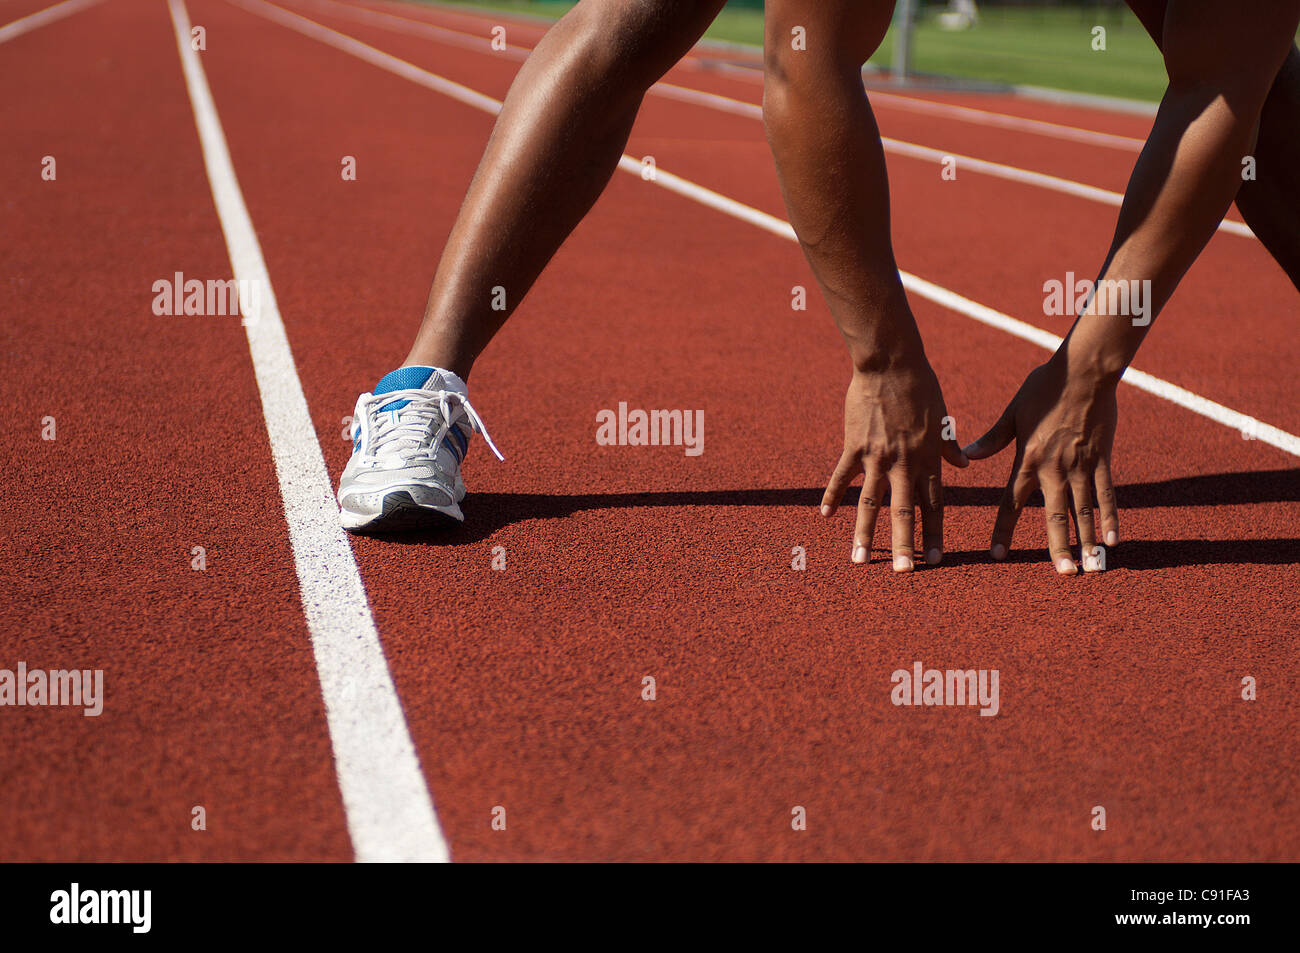 Close up of athlete in start position - Stock Image